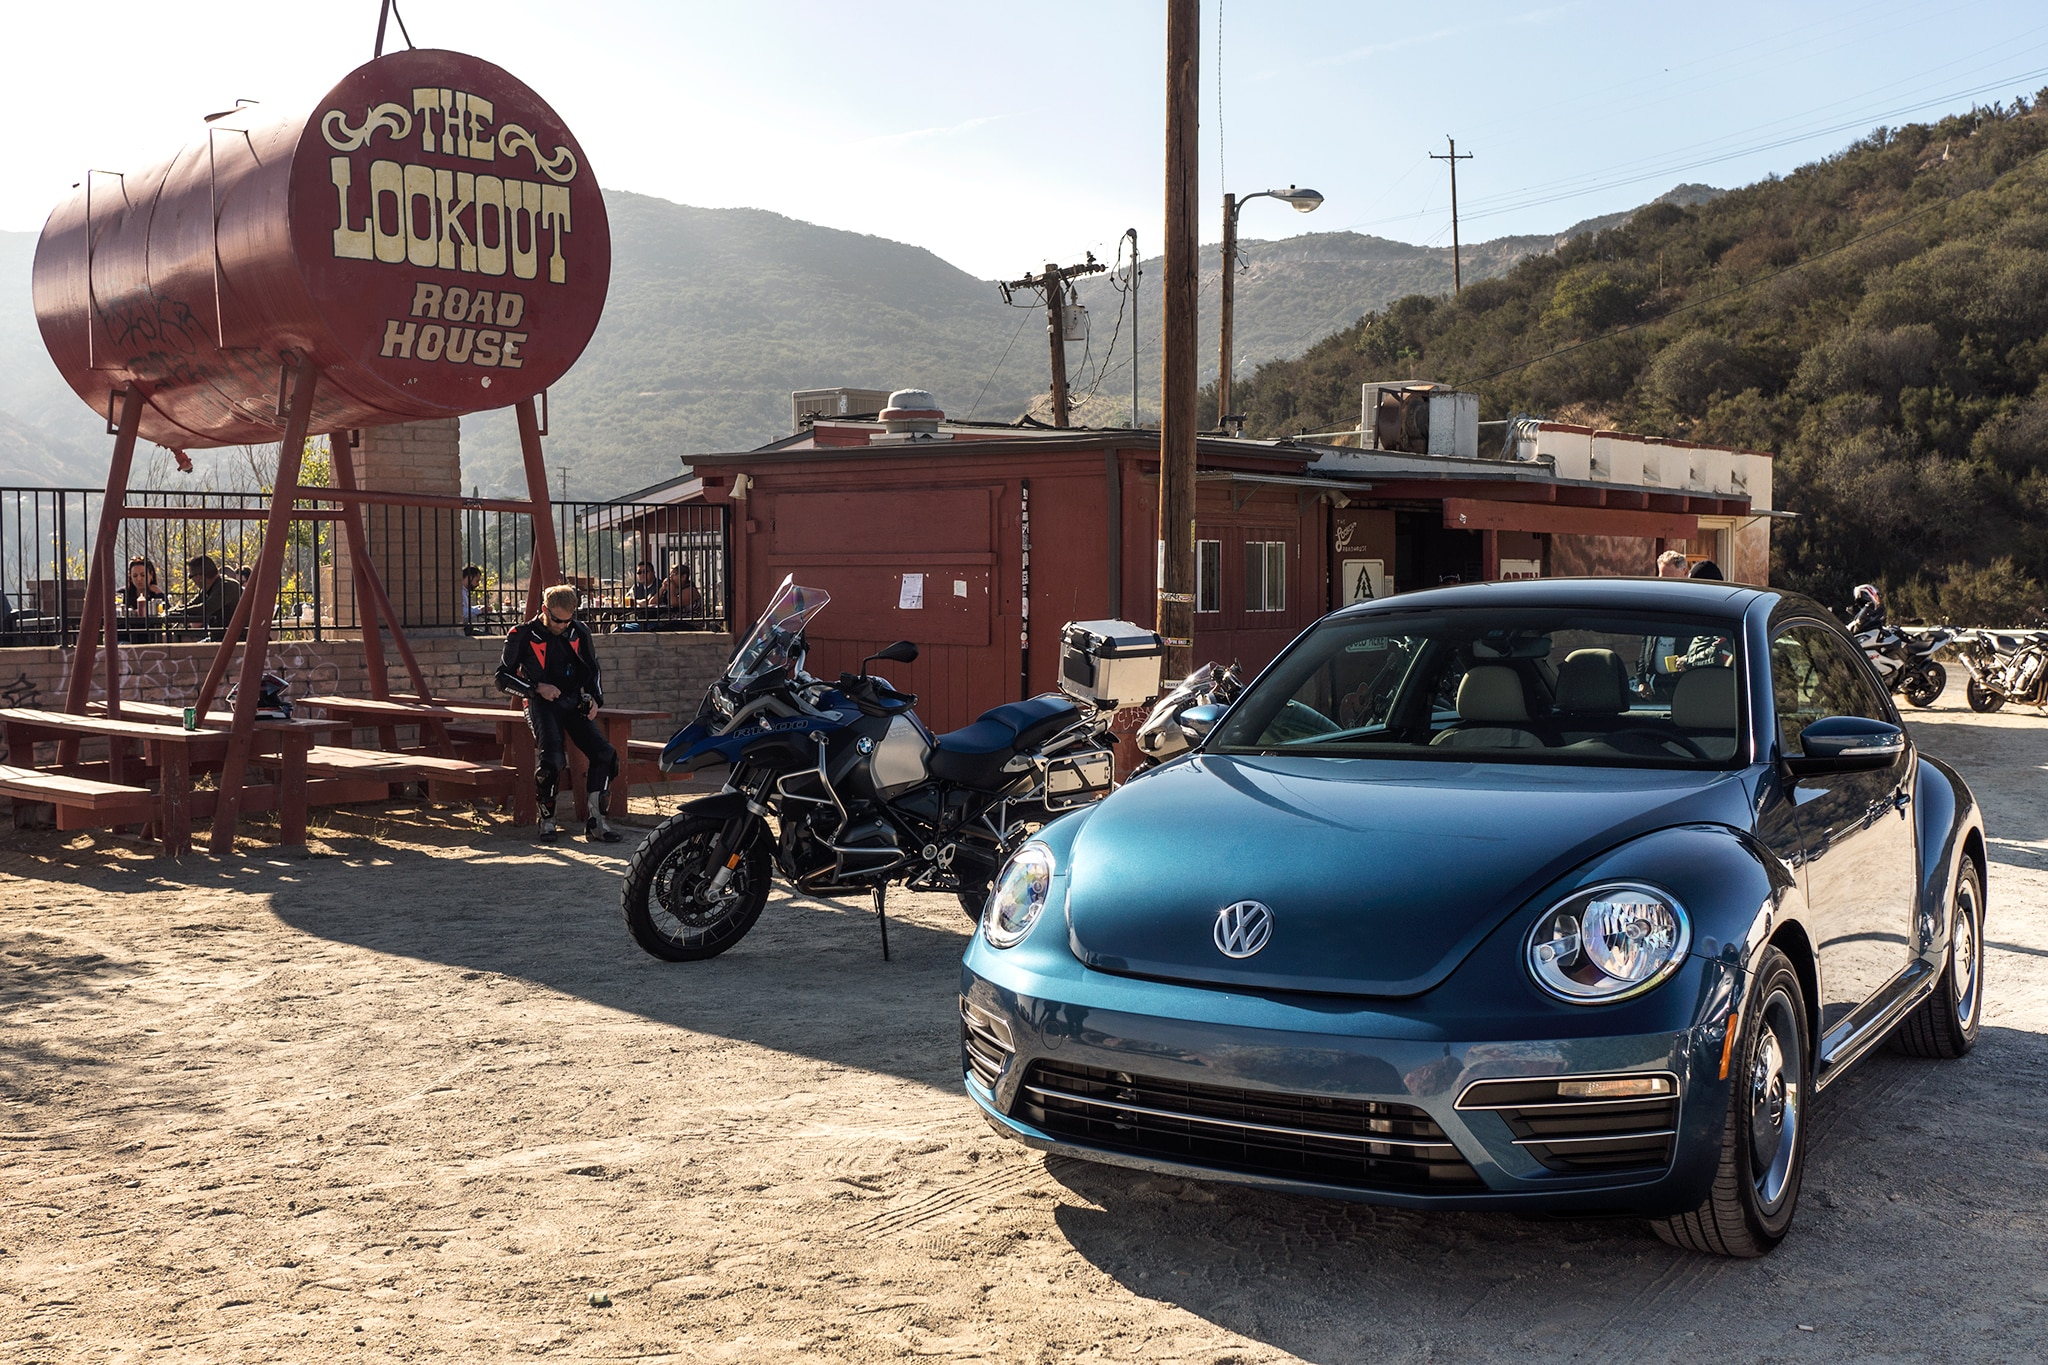 2018 Volkswagen Beetle At The Lookout Roadhouse